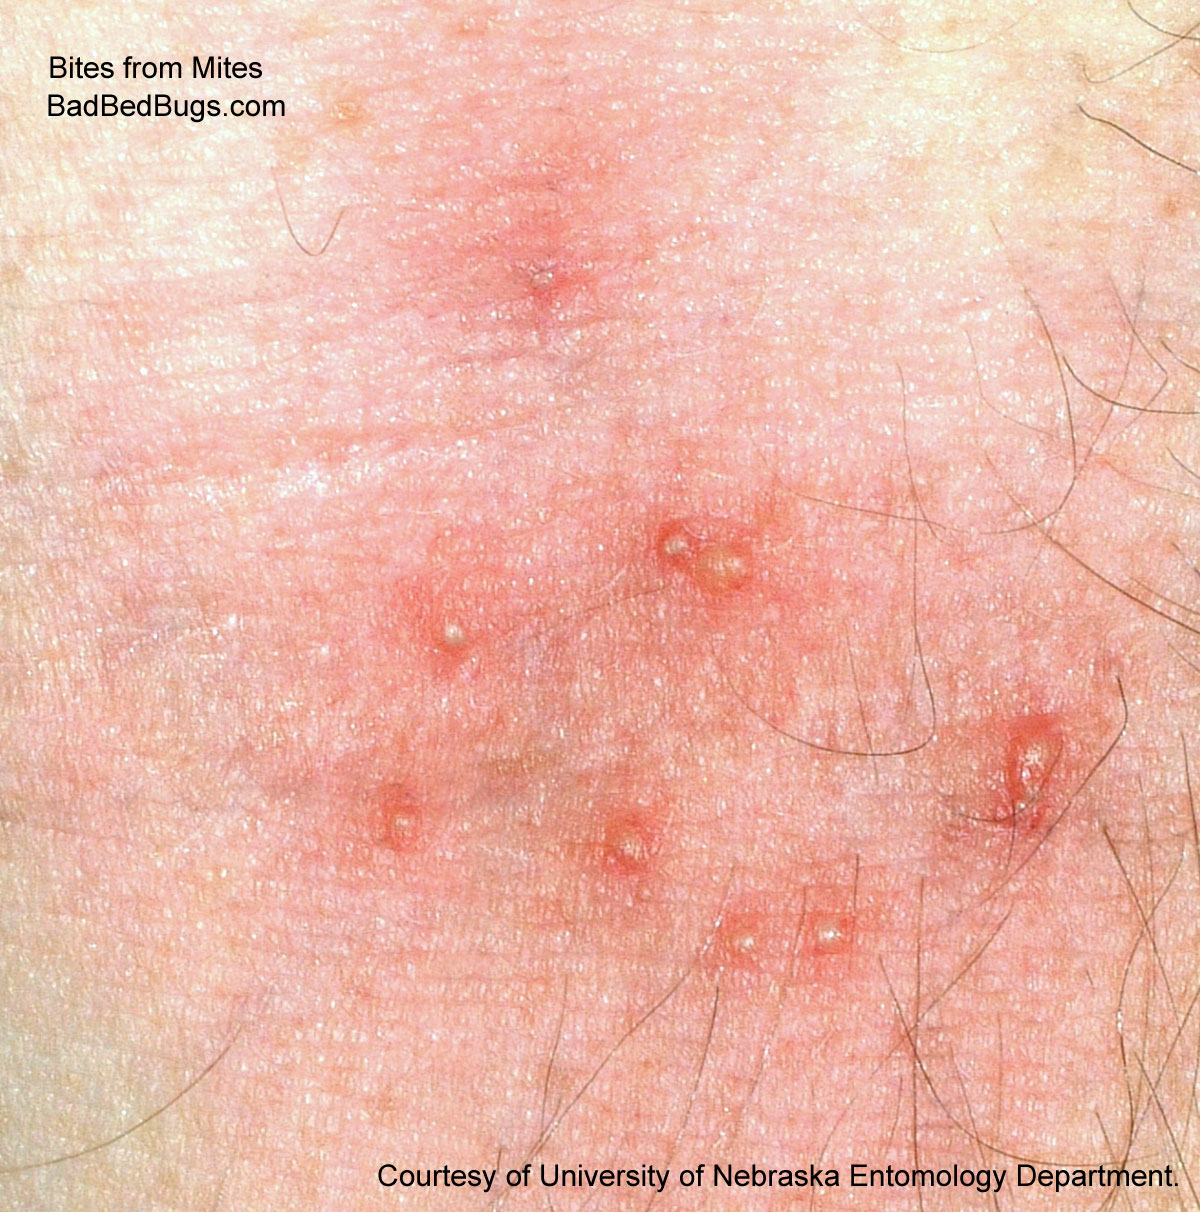 the scabies mite bite is often confused with a bed bug bite and can